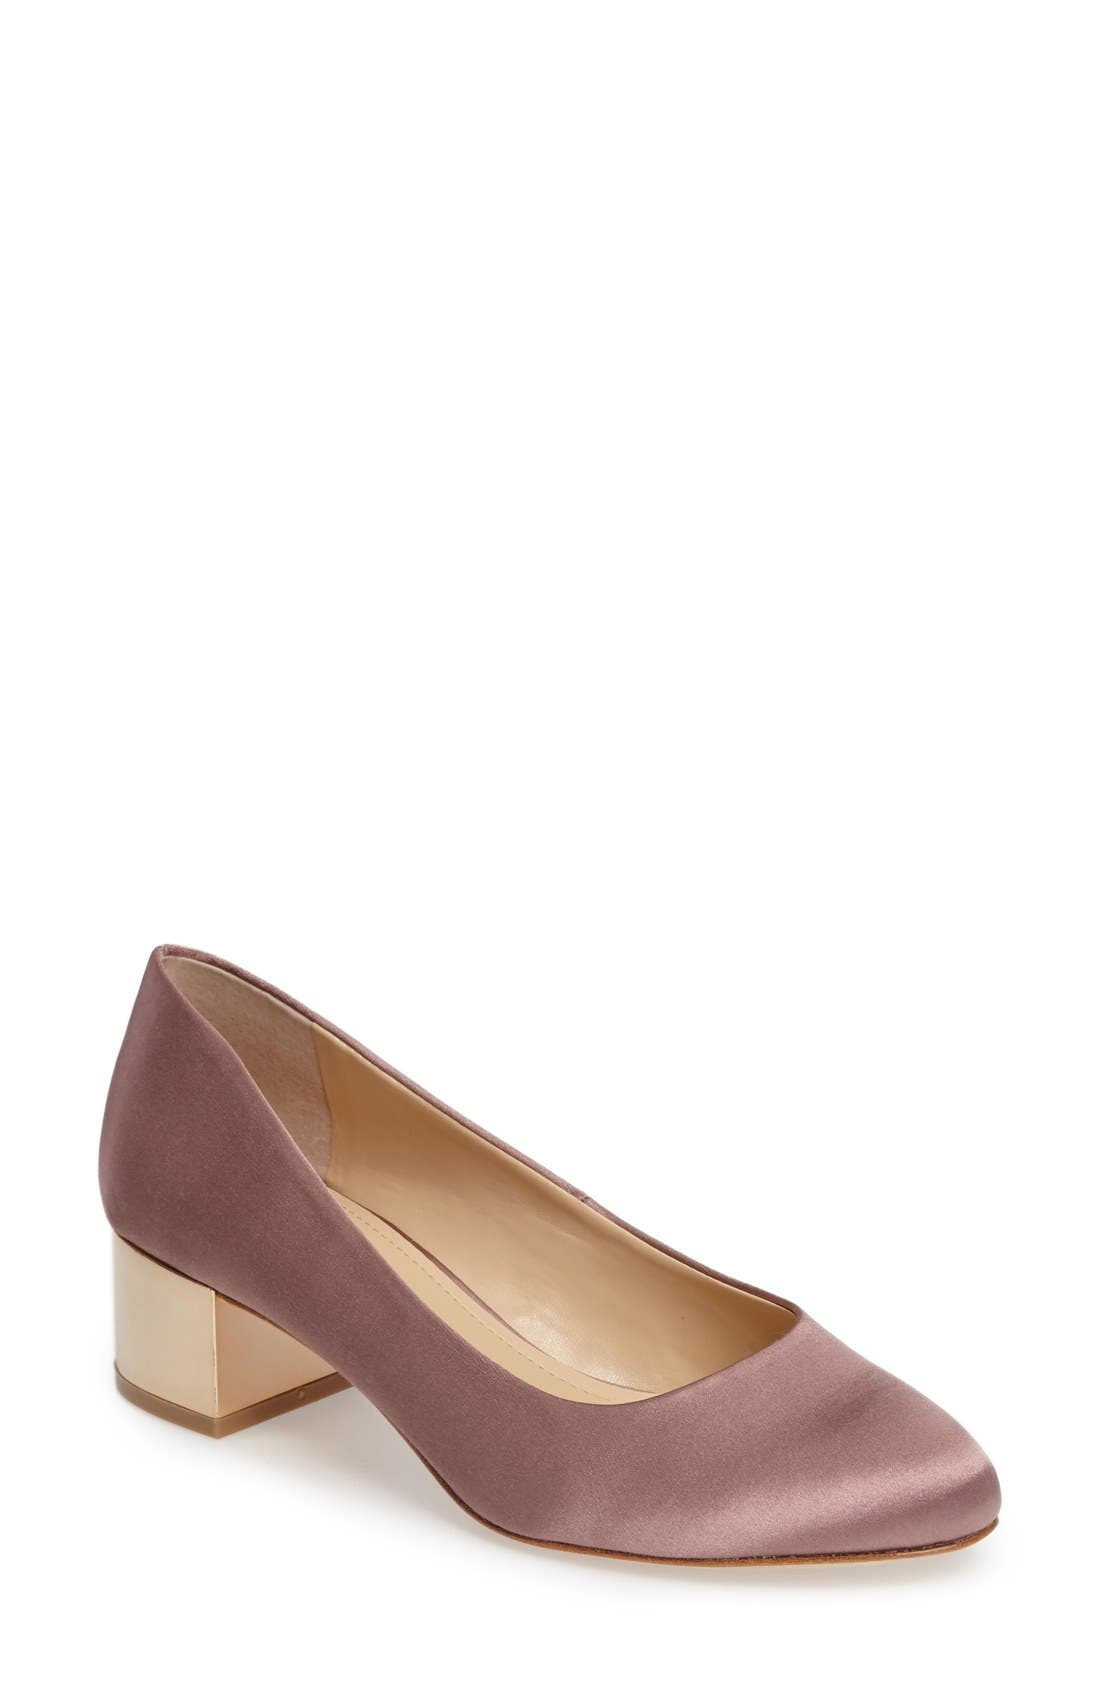 Imagine by Vince Camuto Helsh Block Heel Pump (Women)